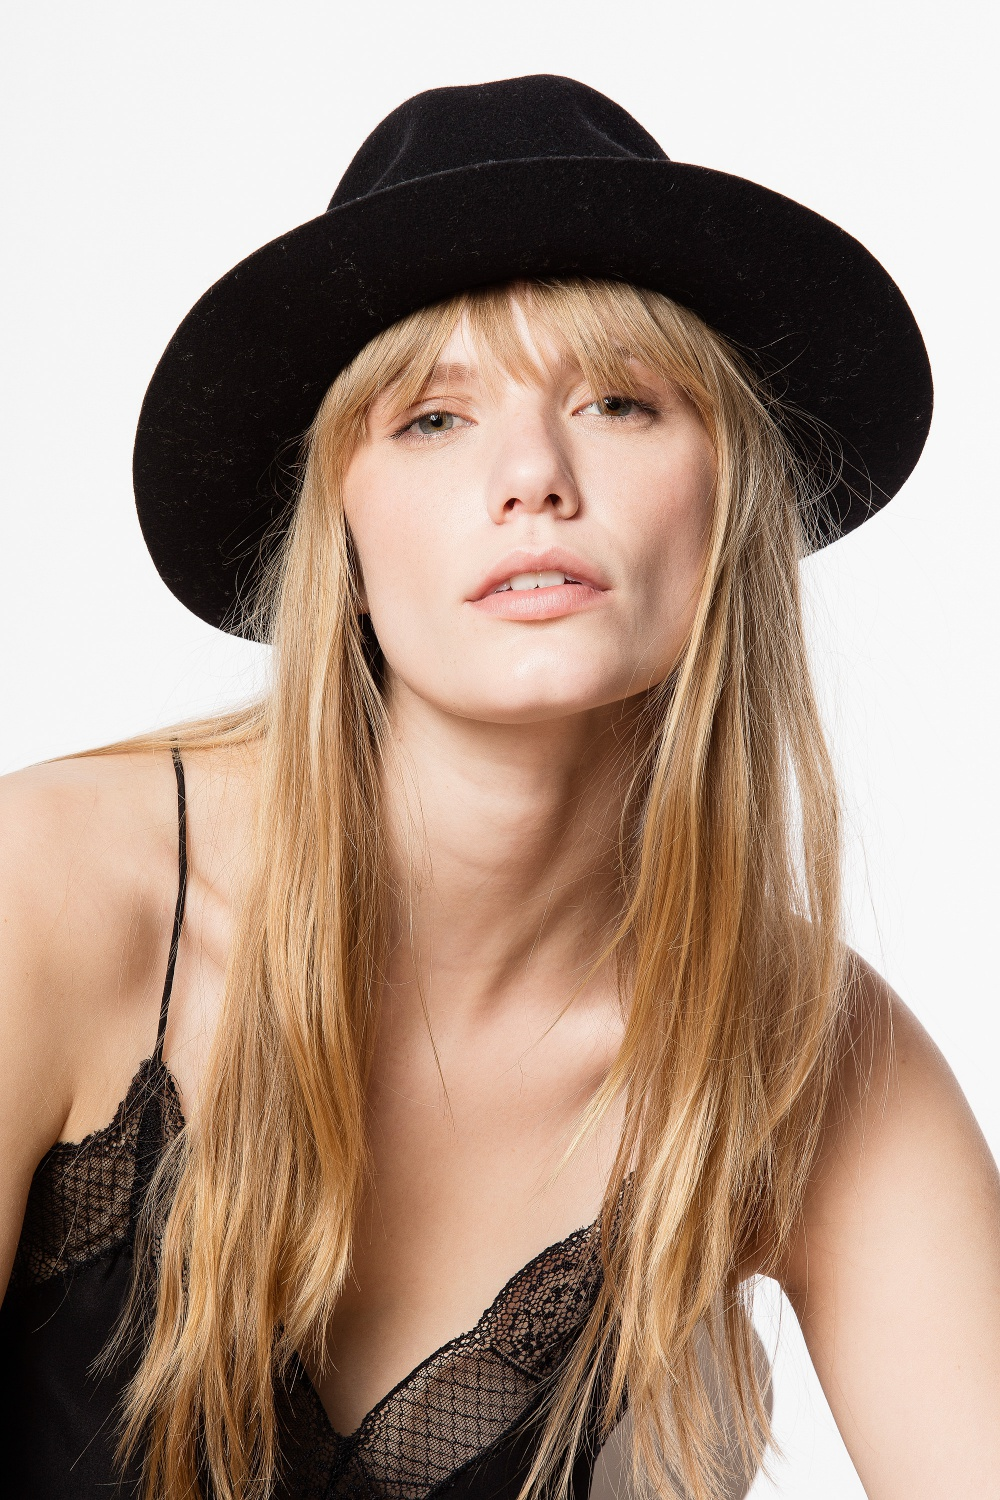 great gift - Zadig & Voltaire women's black wool felt hat with ribbon and ZV rivet, made in Italy. Basically, just the right gift no matter what the occasion! Now available in the sale.